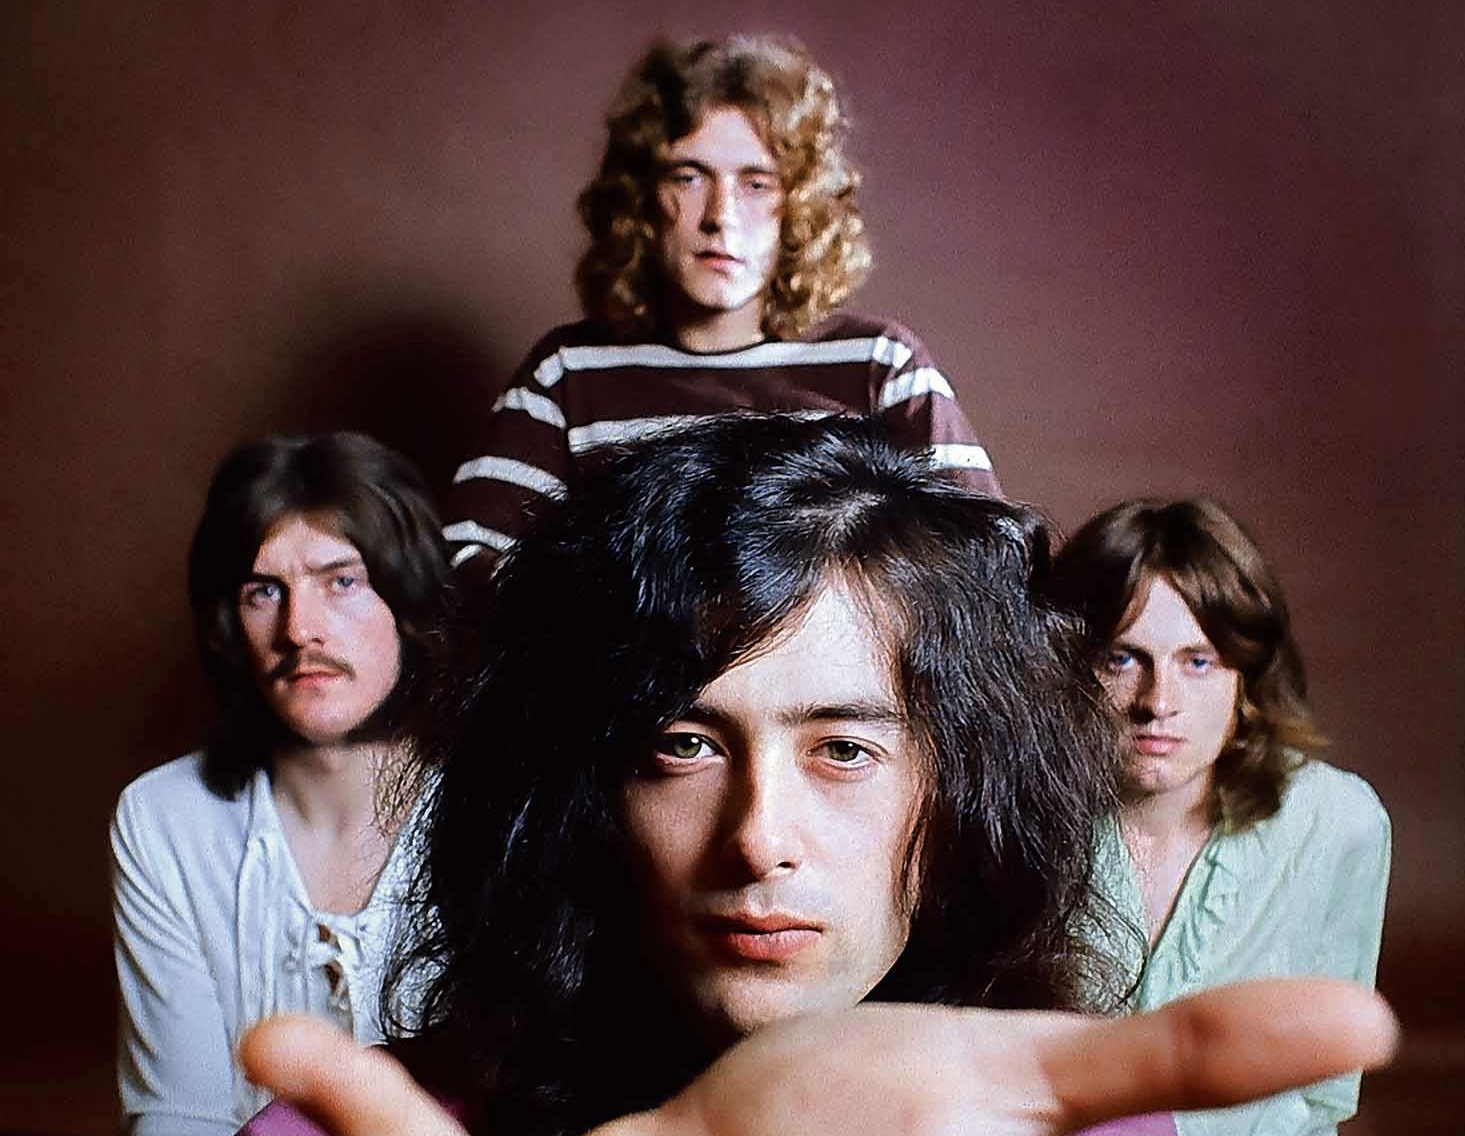 Led Zeppelin Rises: New Album Out in September & Reunion Tour This Fall - Atwood Magazine